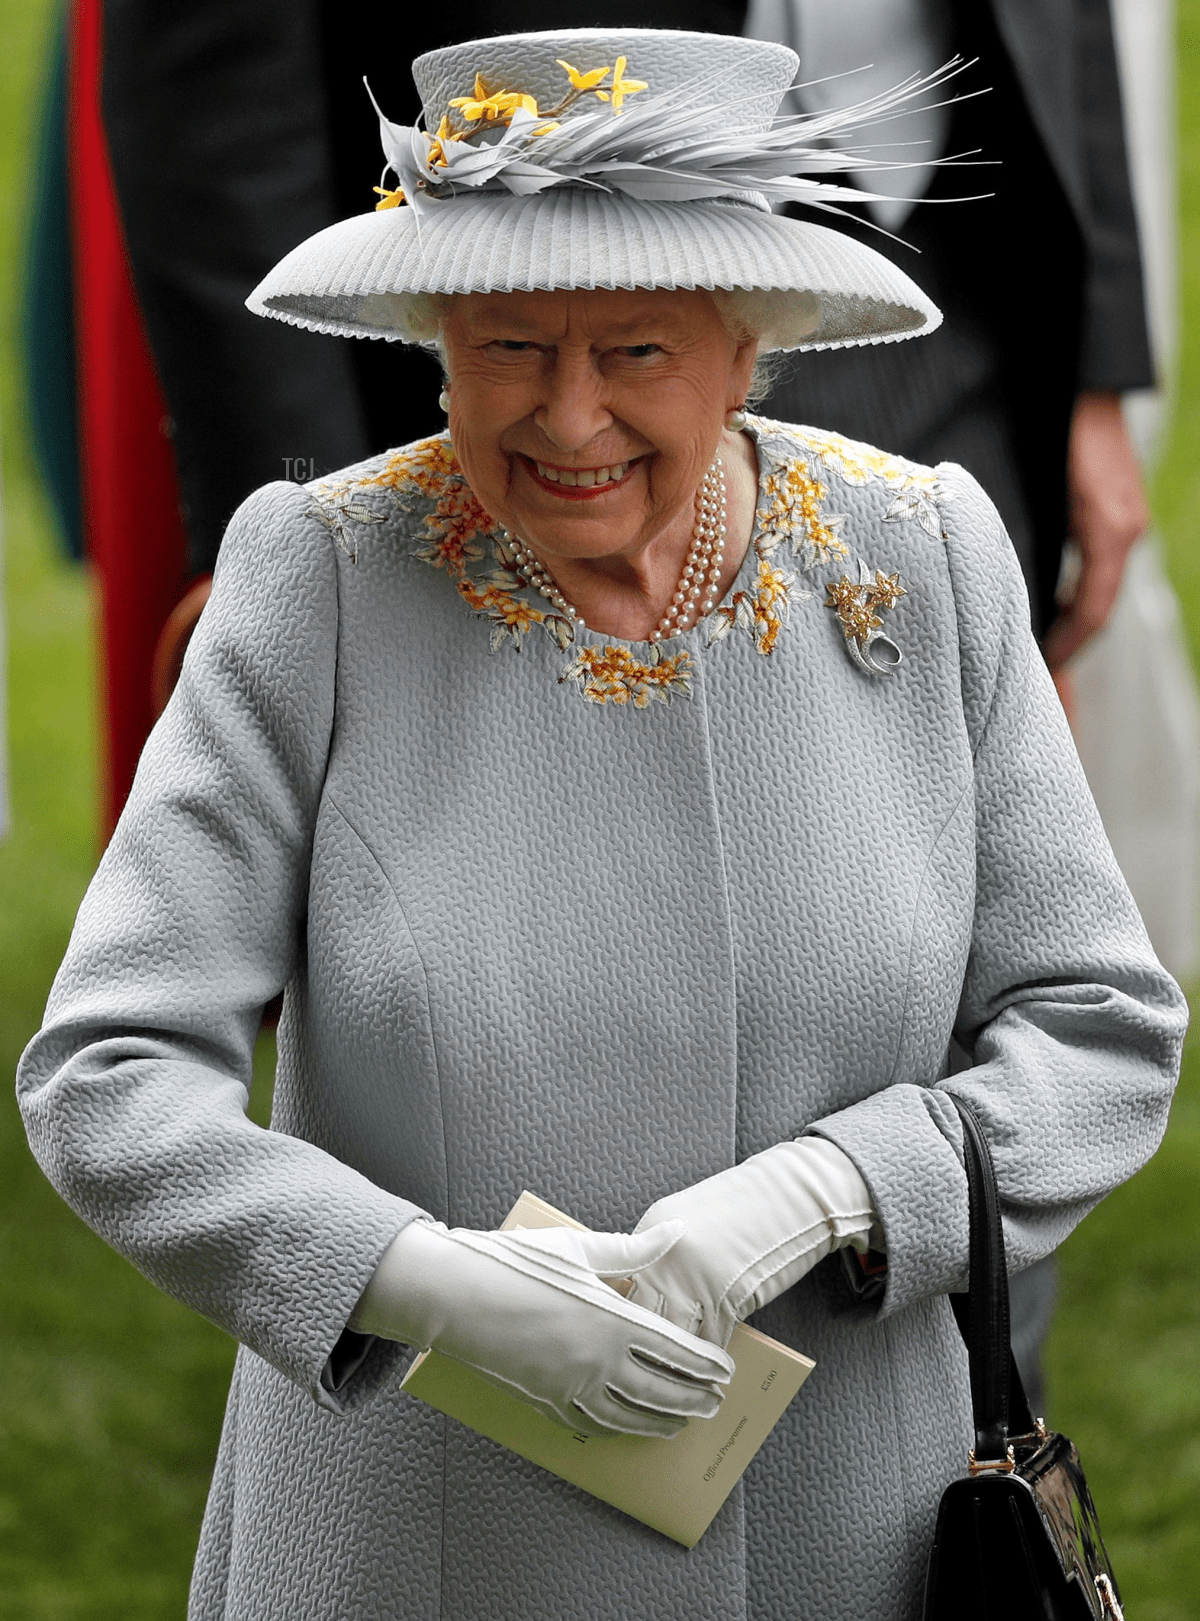 Britain's Queen Elizabeth II smiles as she attends day three of the Royal Ascot horse racing meet, in Ascot, west of London, on June 20, 2019